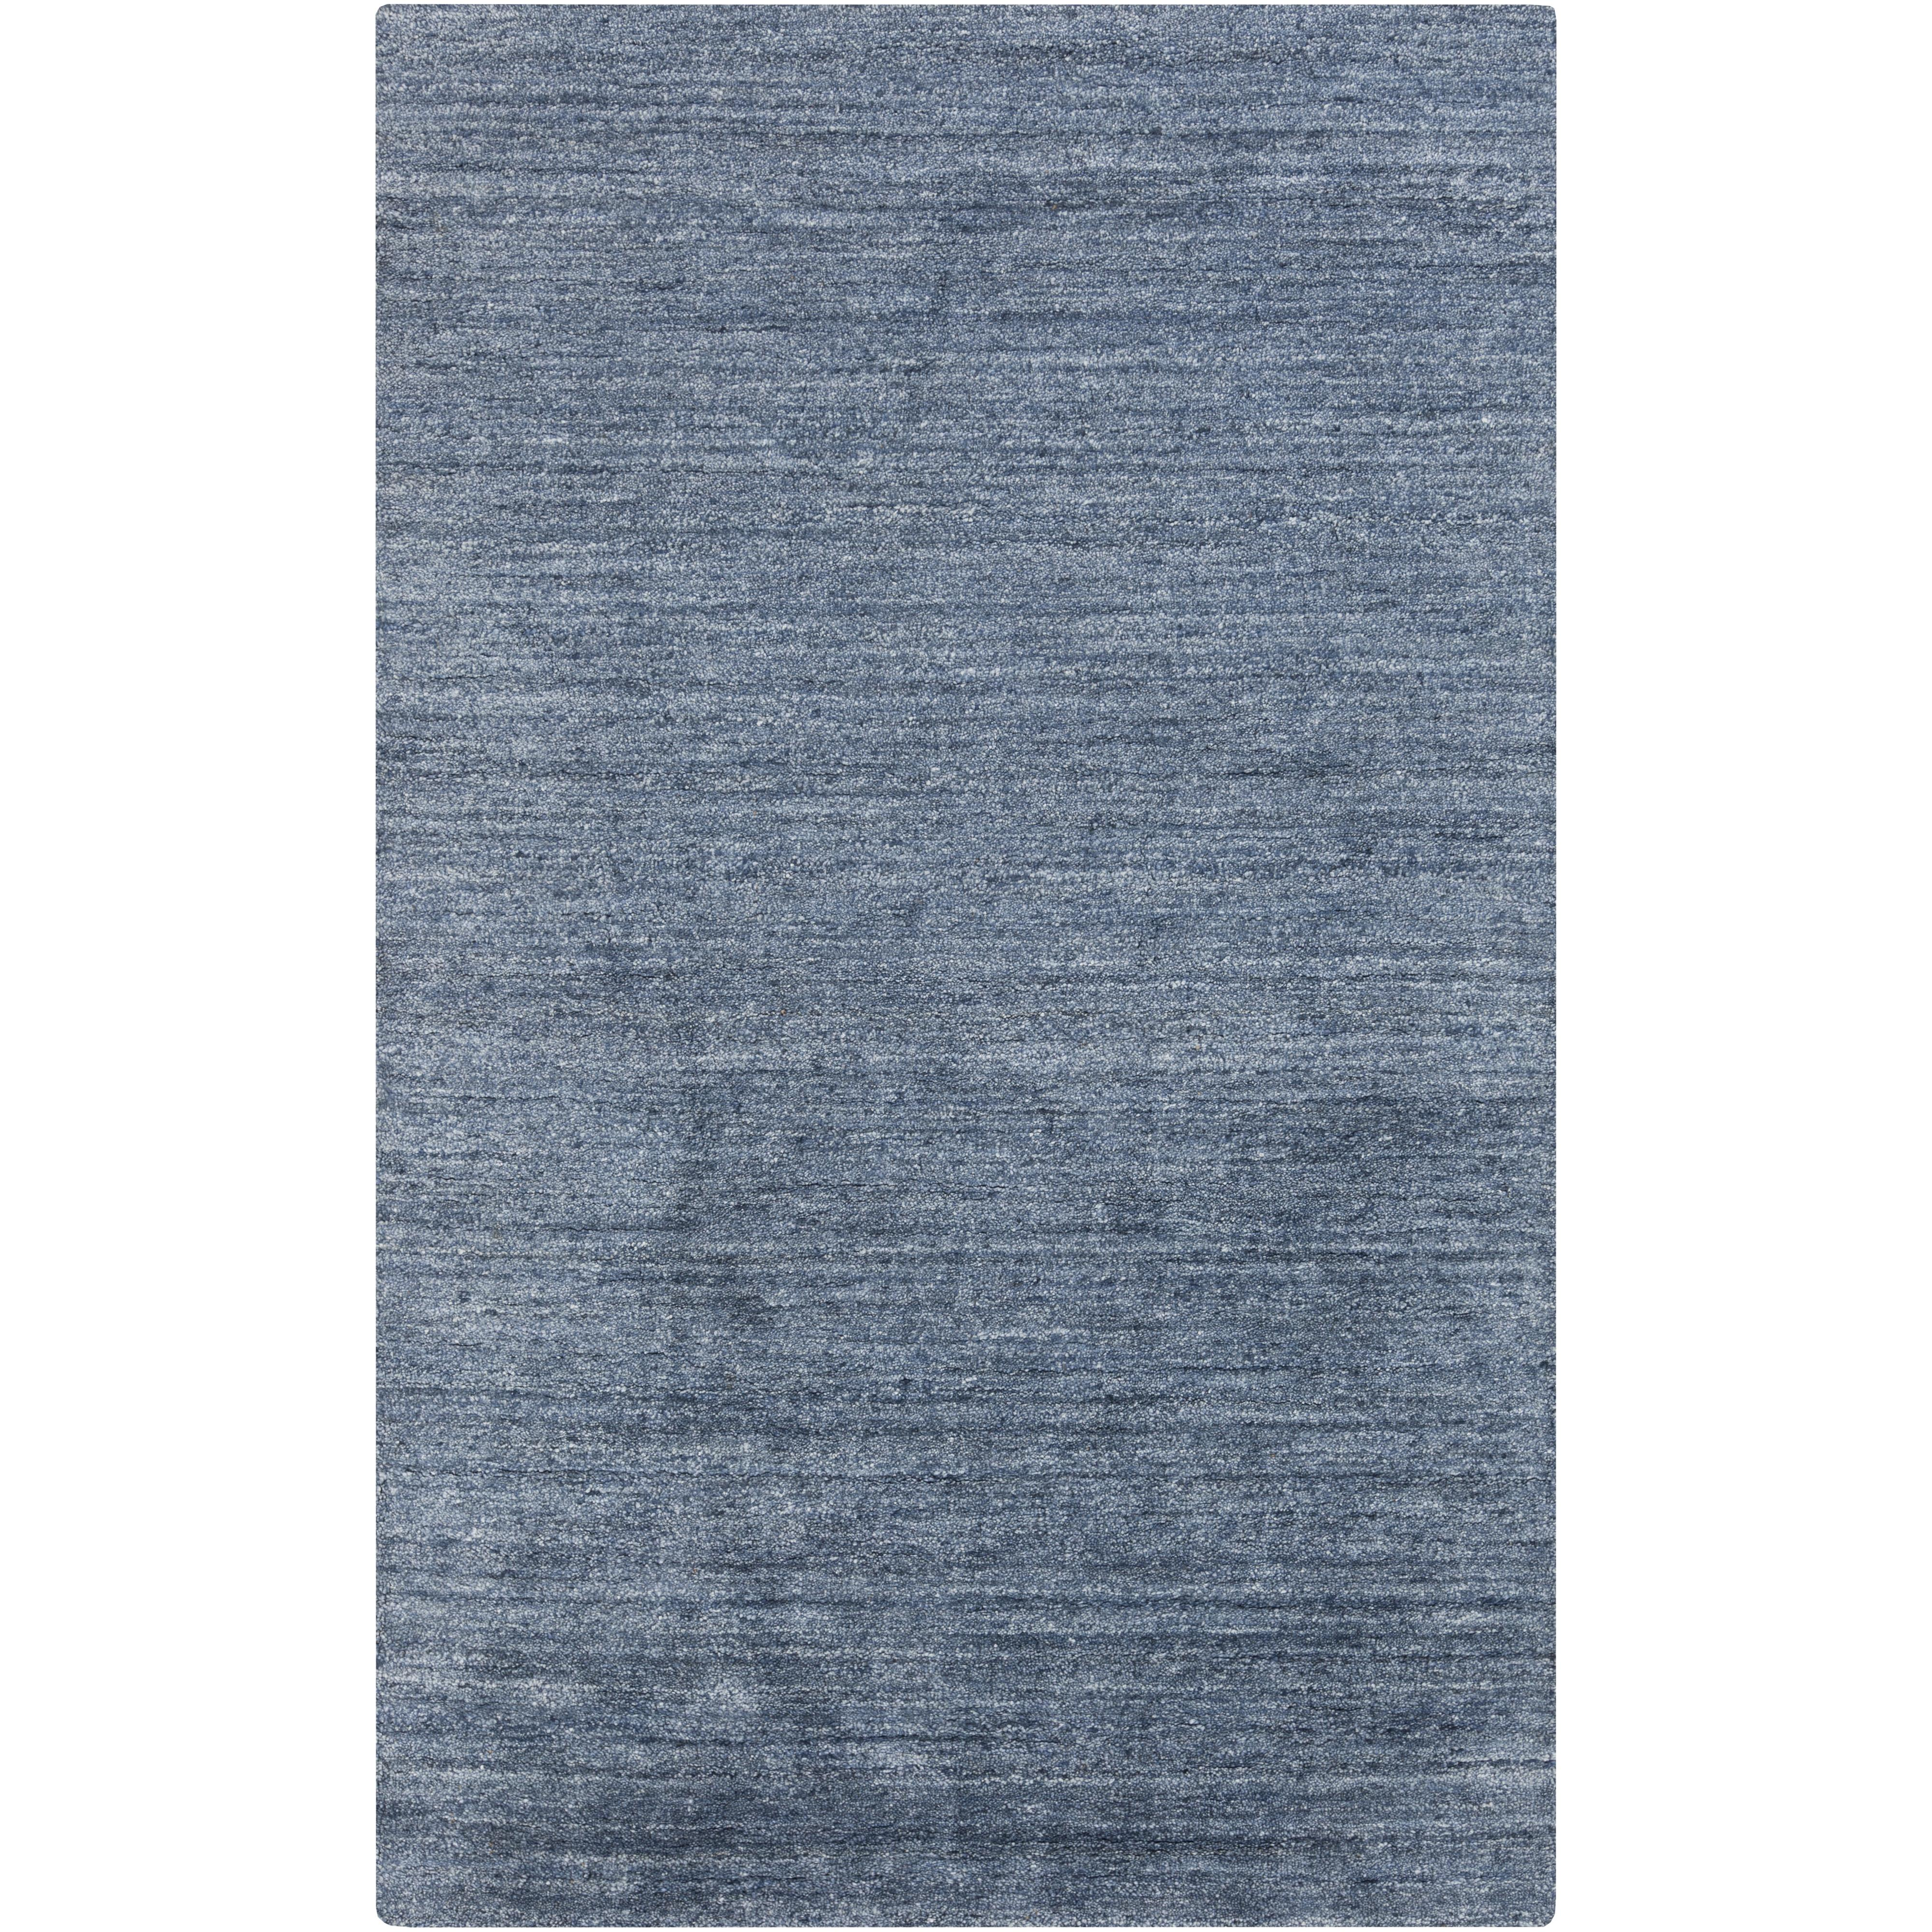 Surya Rugs Haize 5' x 8' - Item Number: HAZ6007-58